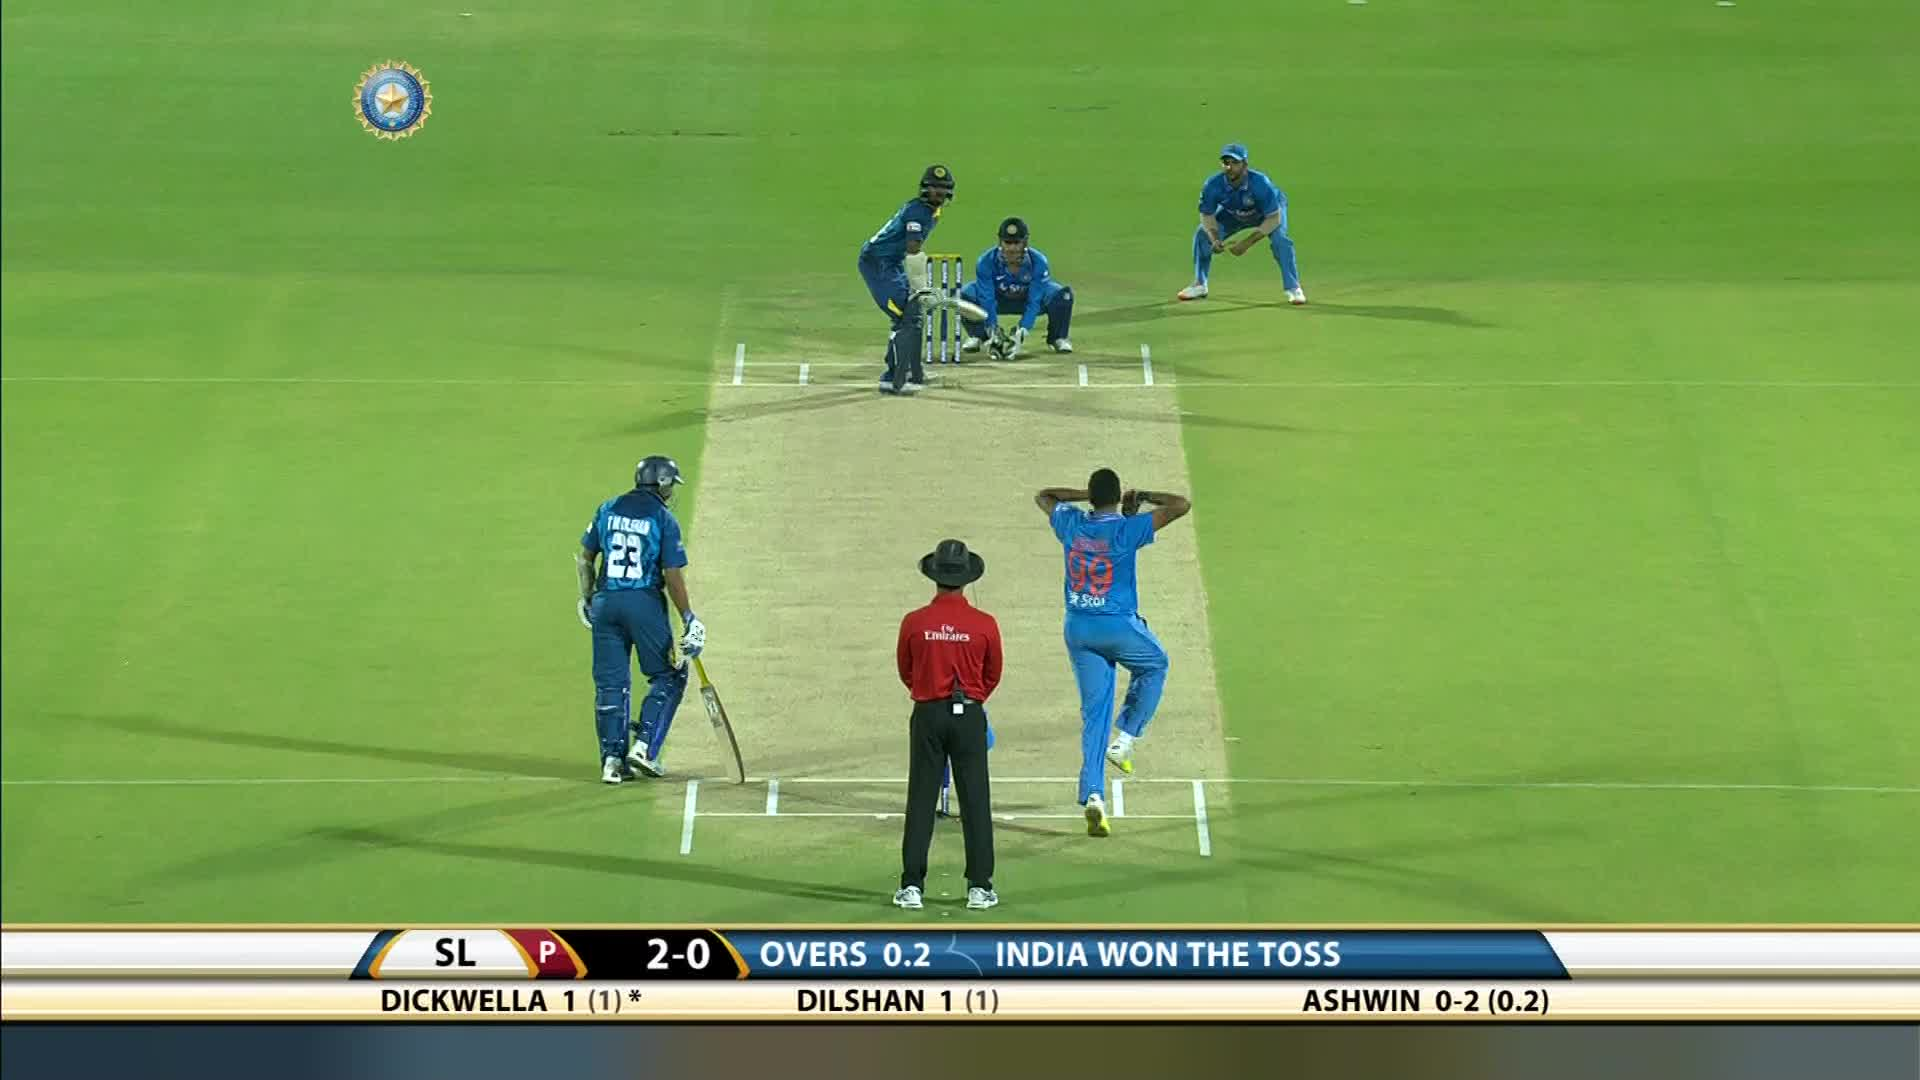 Sony Six Live Cricket Streaming And Highlights India Vs England 3rd Test 2018